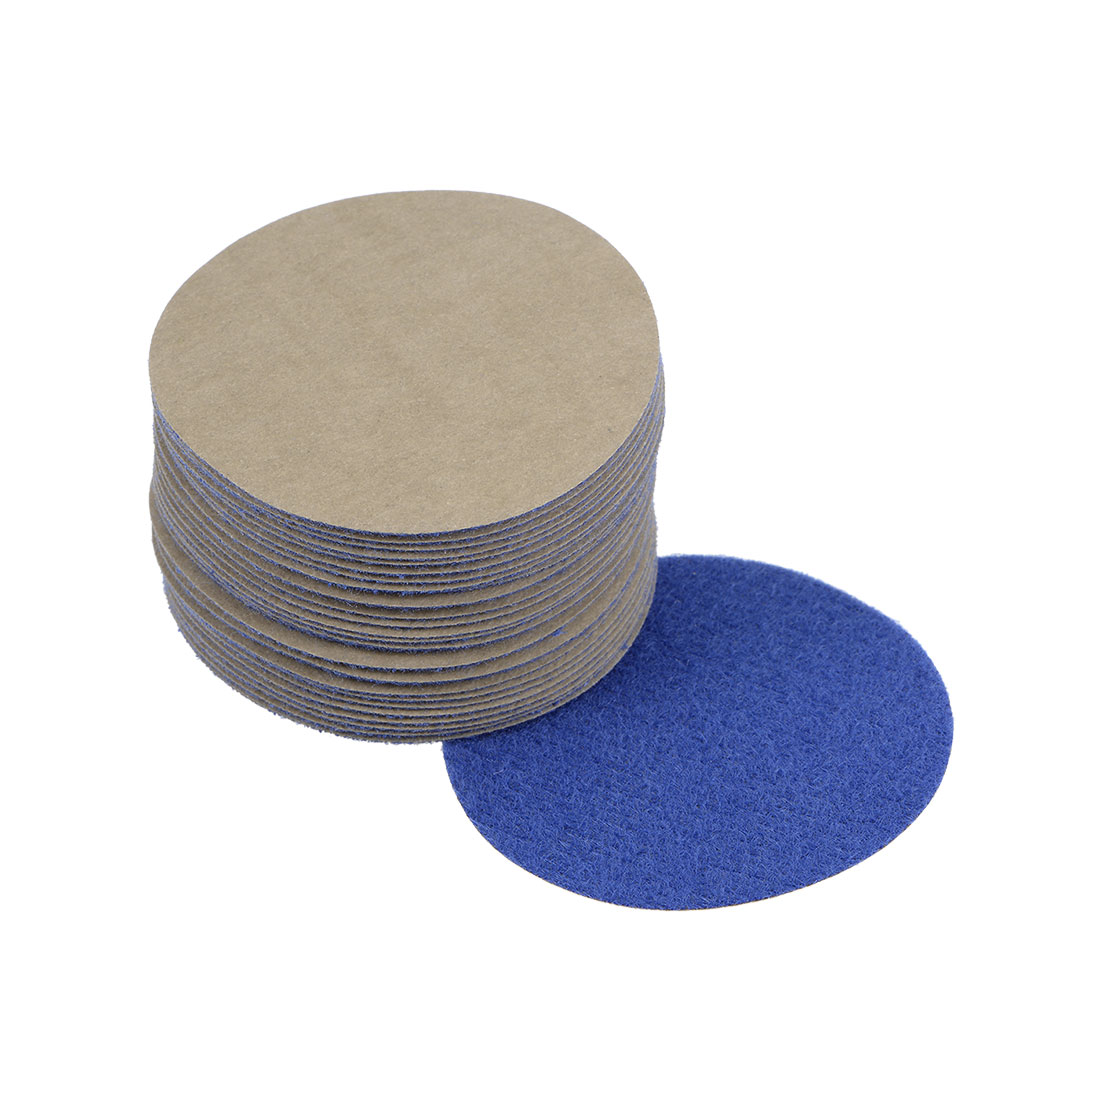 2 inch Wet Dry Discs 7000 Grit Hook and Loop Sanding Disc Silicon Carbide 30pcs